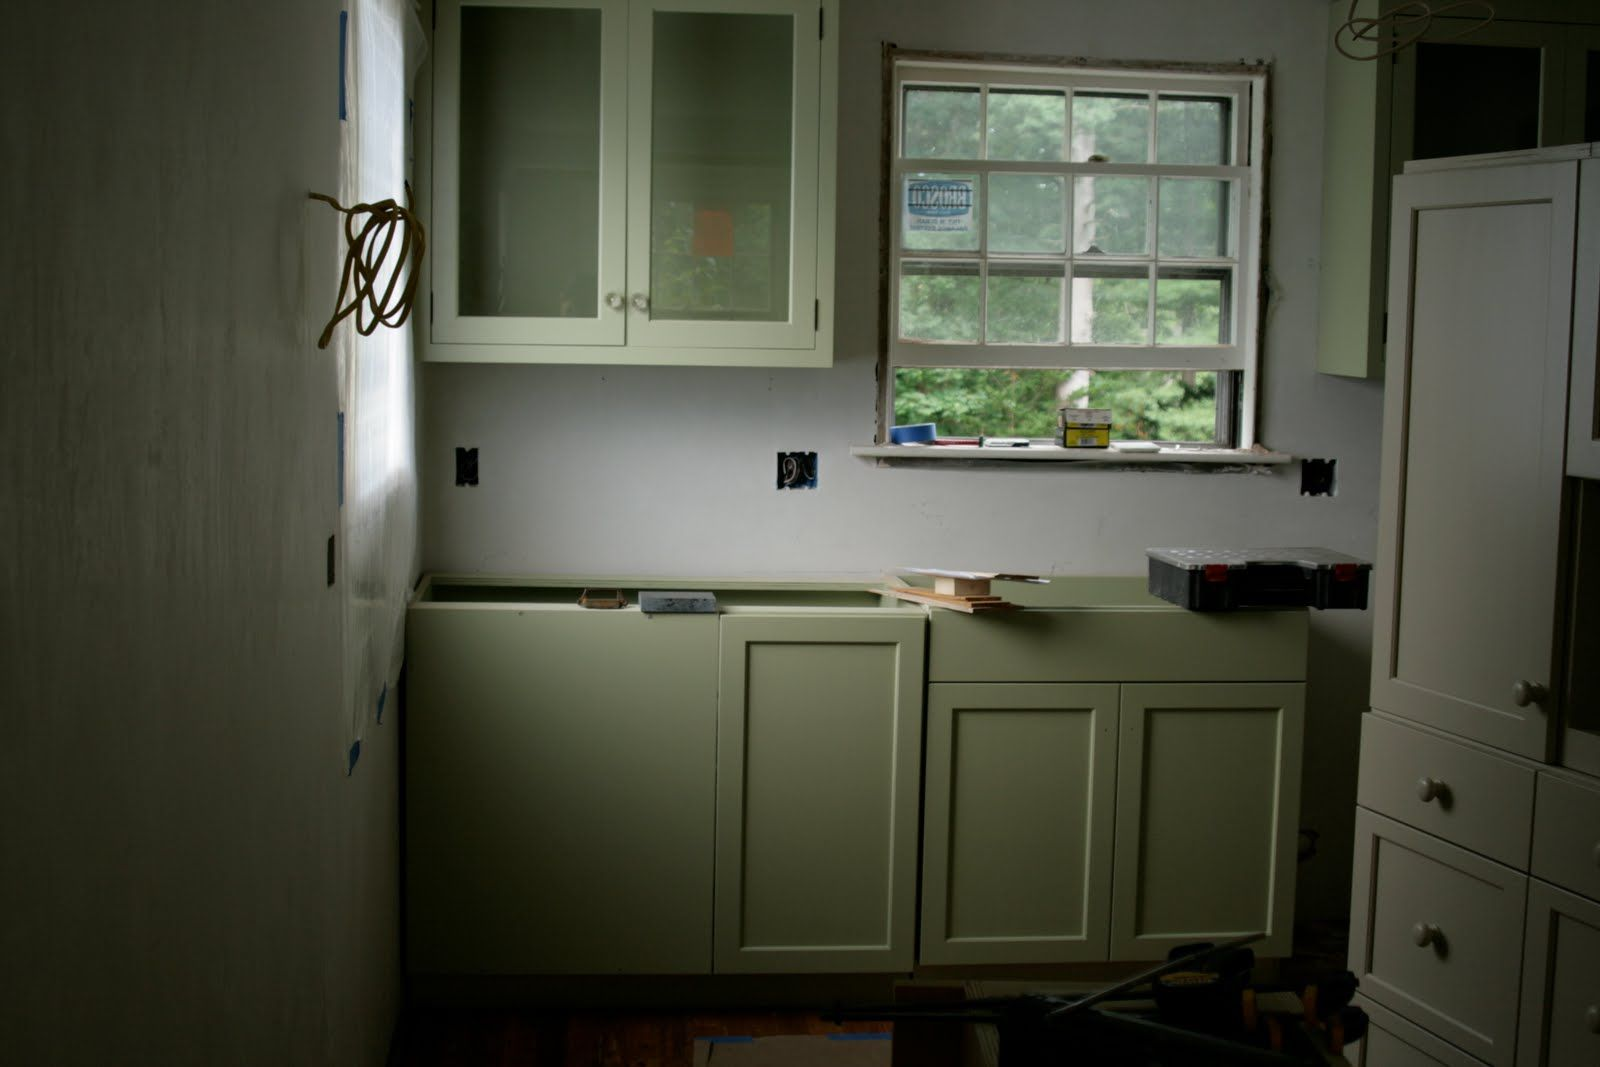 Farrow Ball 39 Cooking Apple Green 39 Painted Cabinets